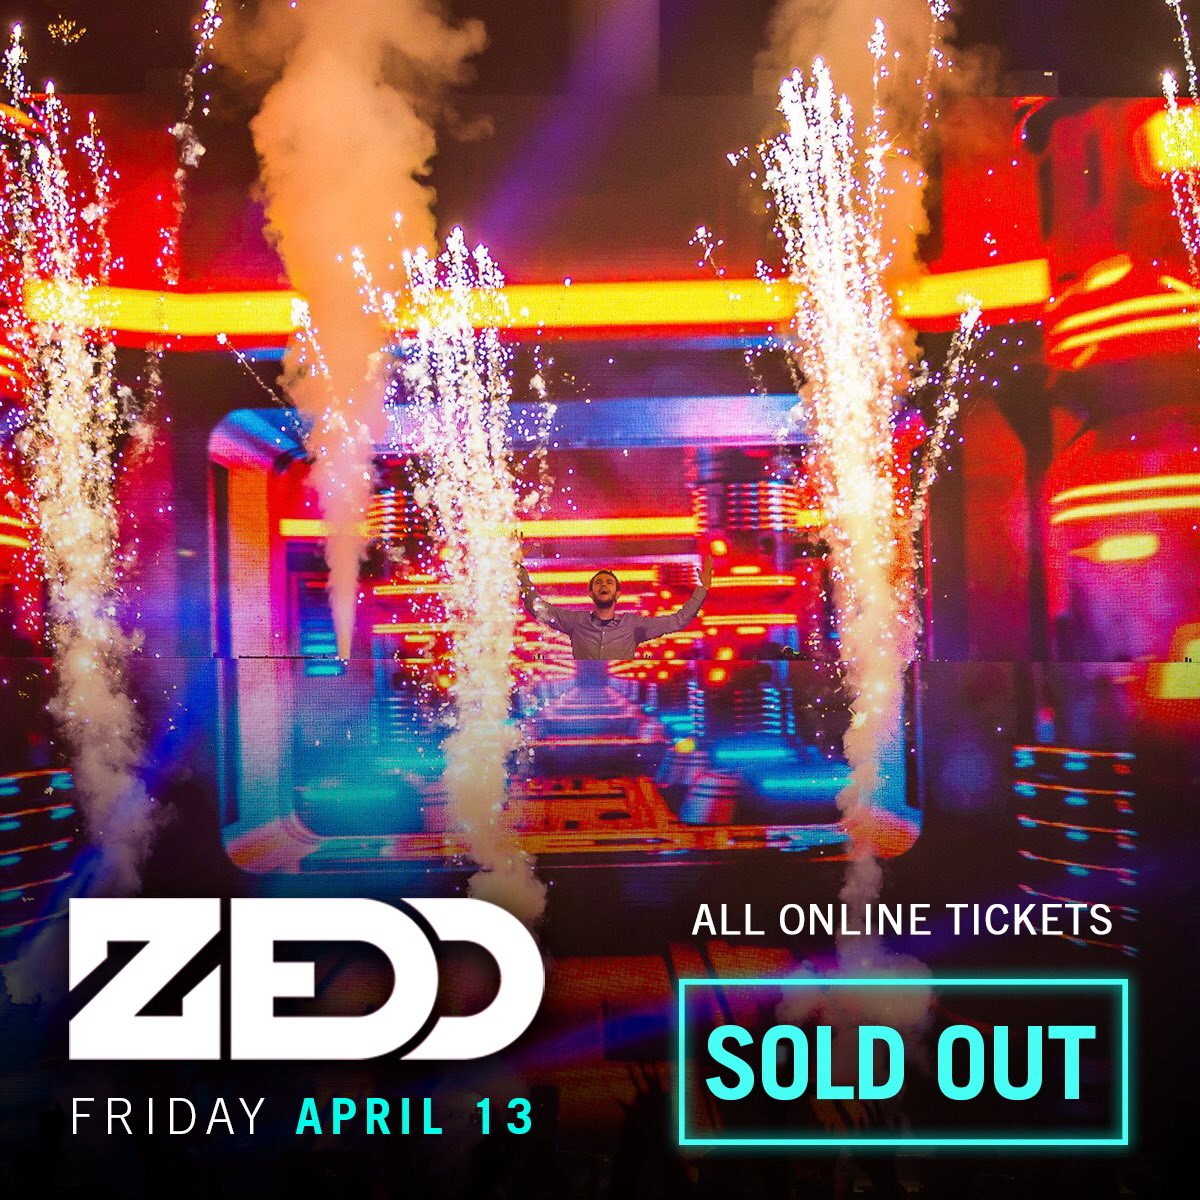 SOLD OUT!! See you in The Middle, @Zedd...